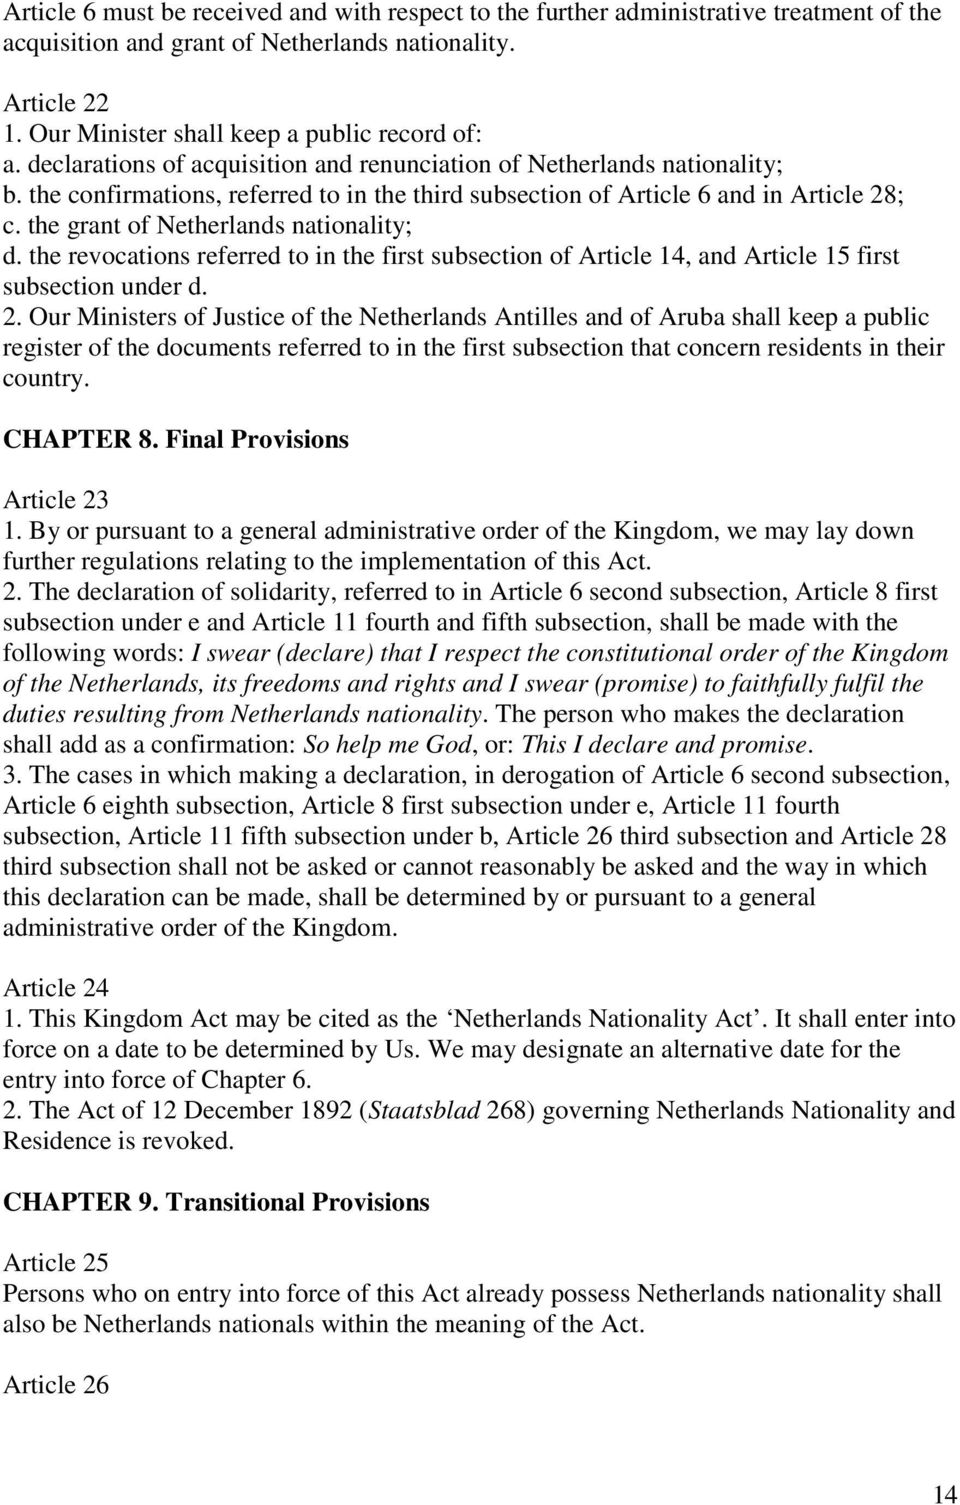 the confirmations, referred to in the third subsection of Article 6 and in Article 28; c. the grant of Netherlands nationality; d.